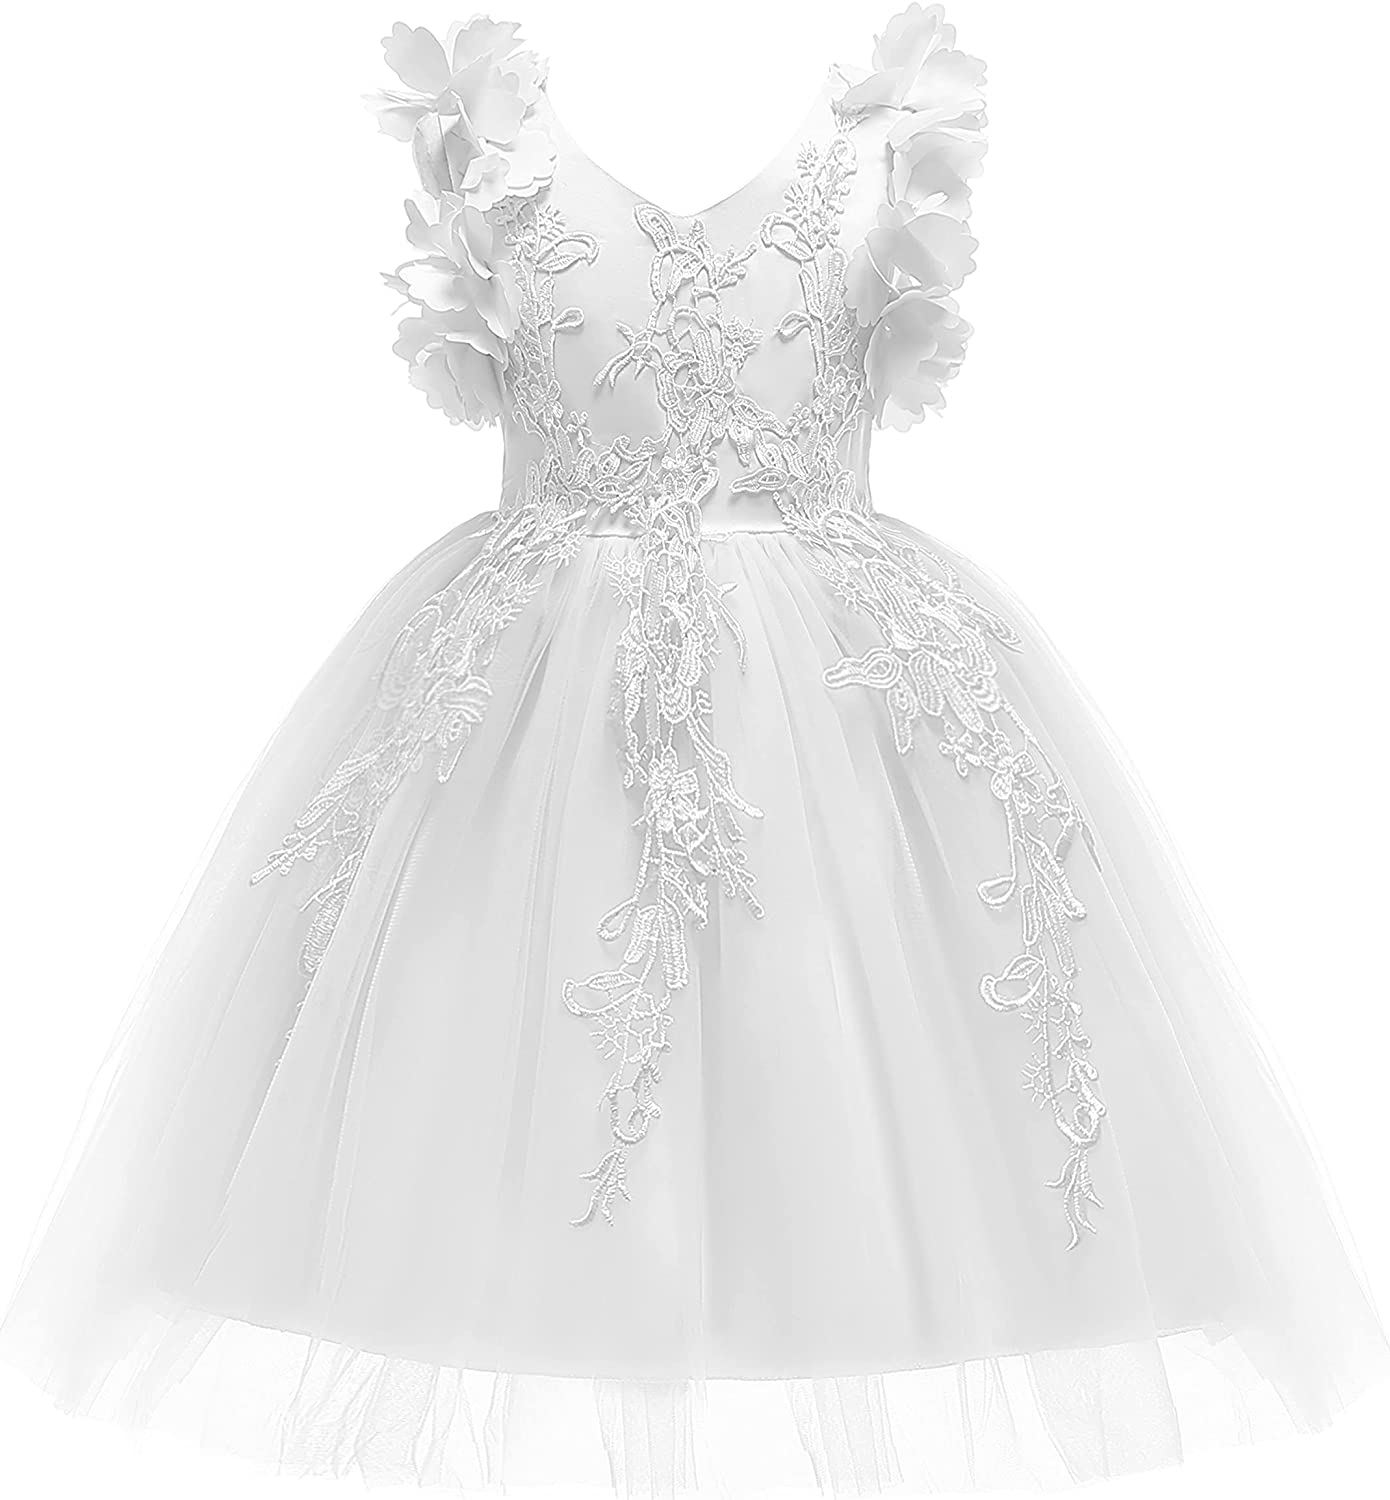 Weileenice 3-9T Ranking Branded goods TOP17 Flower Girl Lace Christmas Kids Pa Pageant Dress